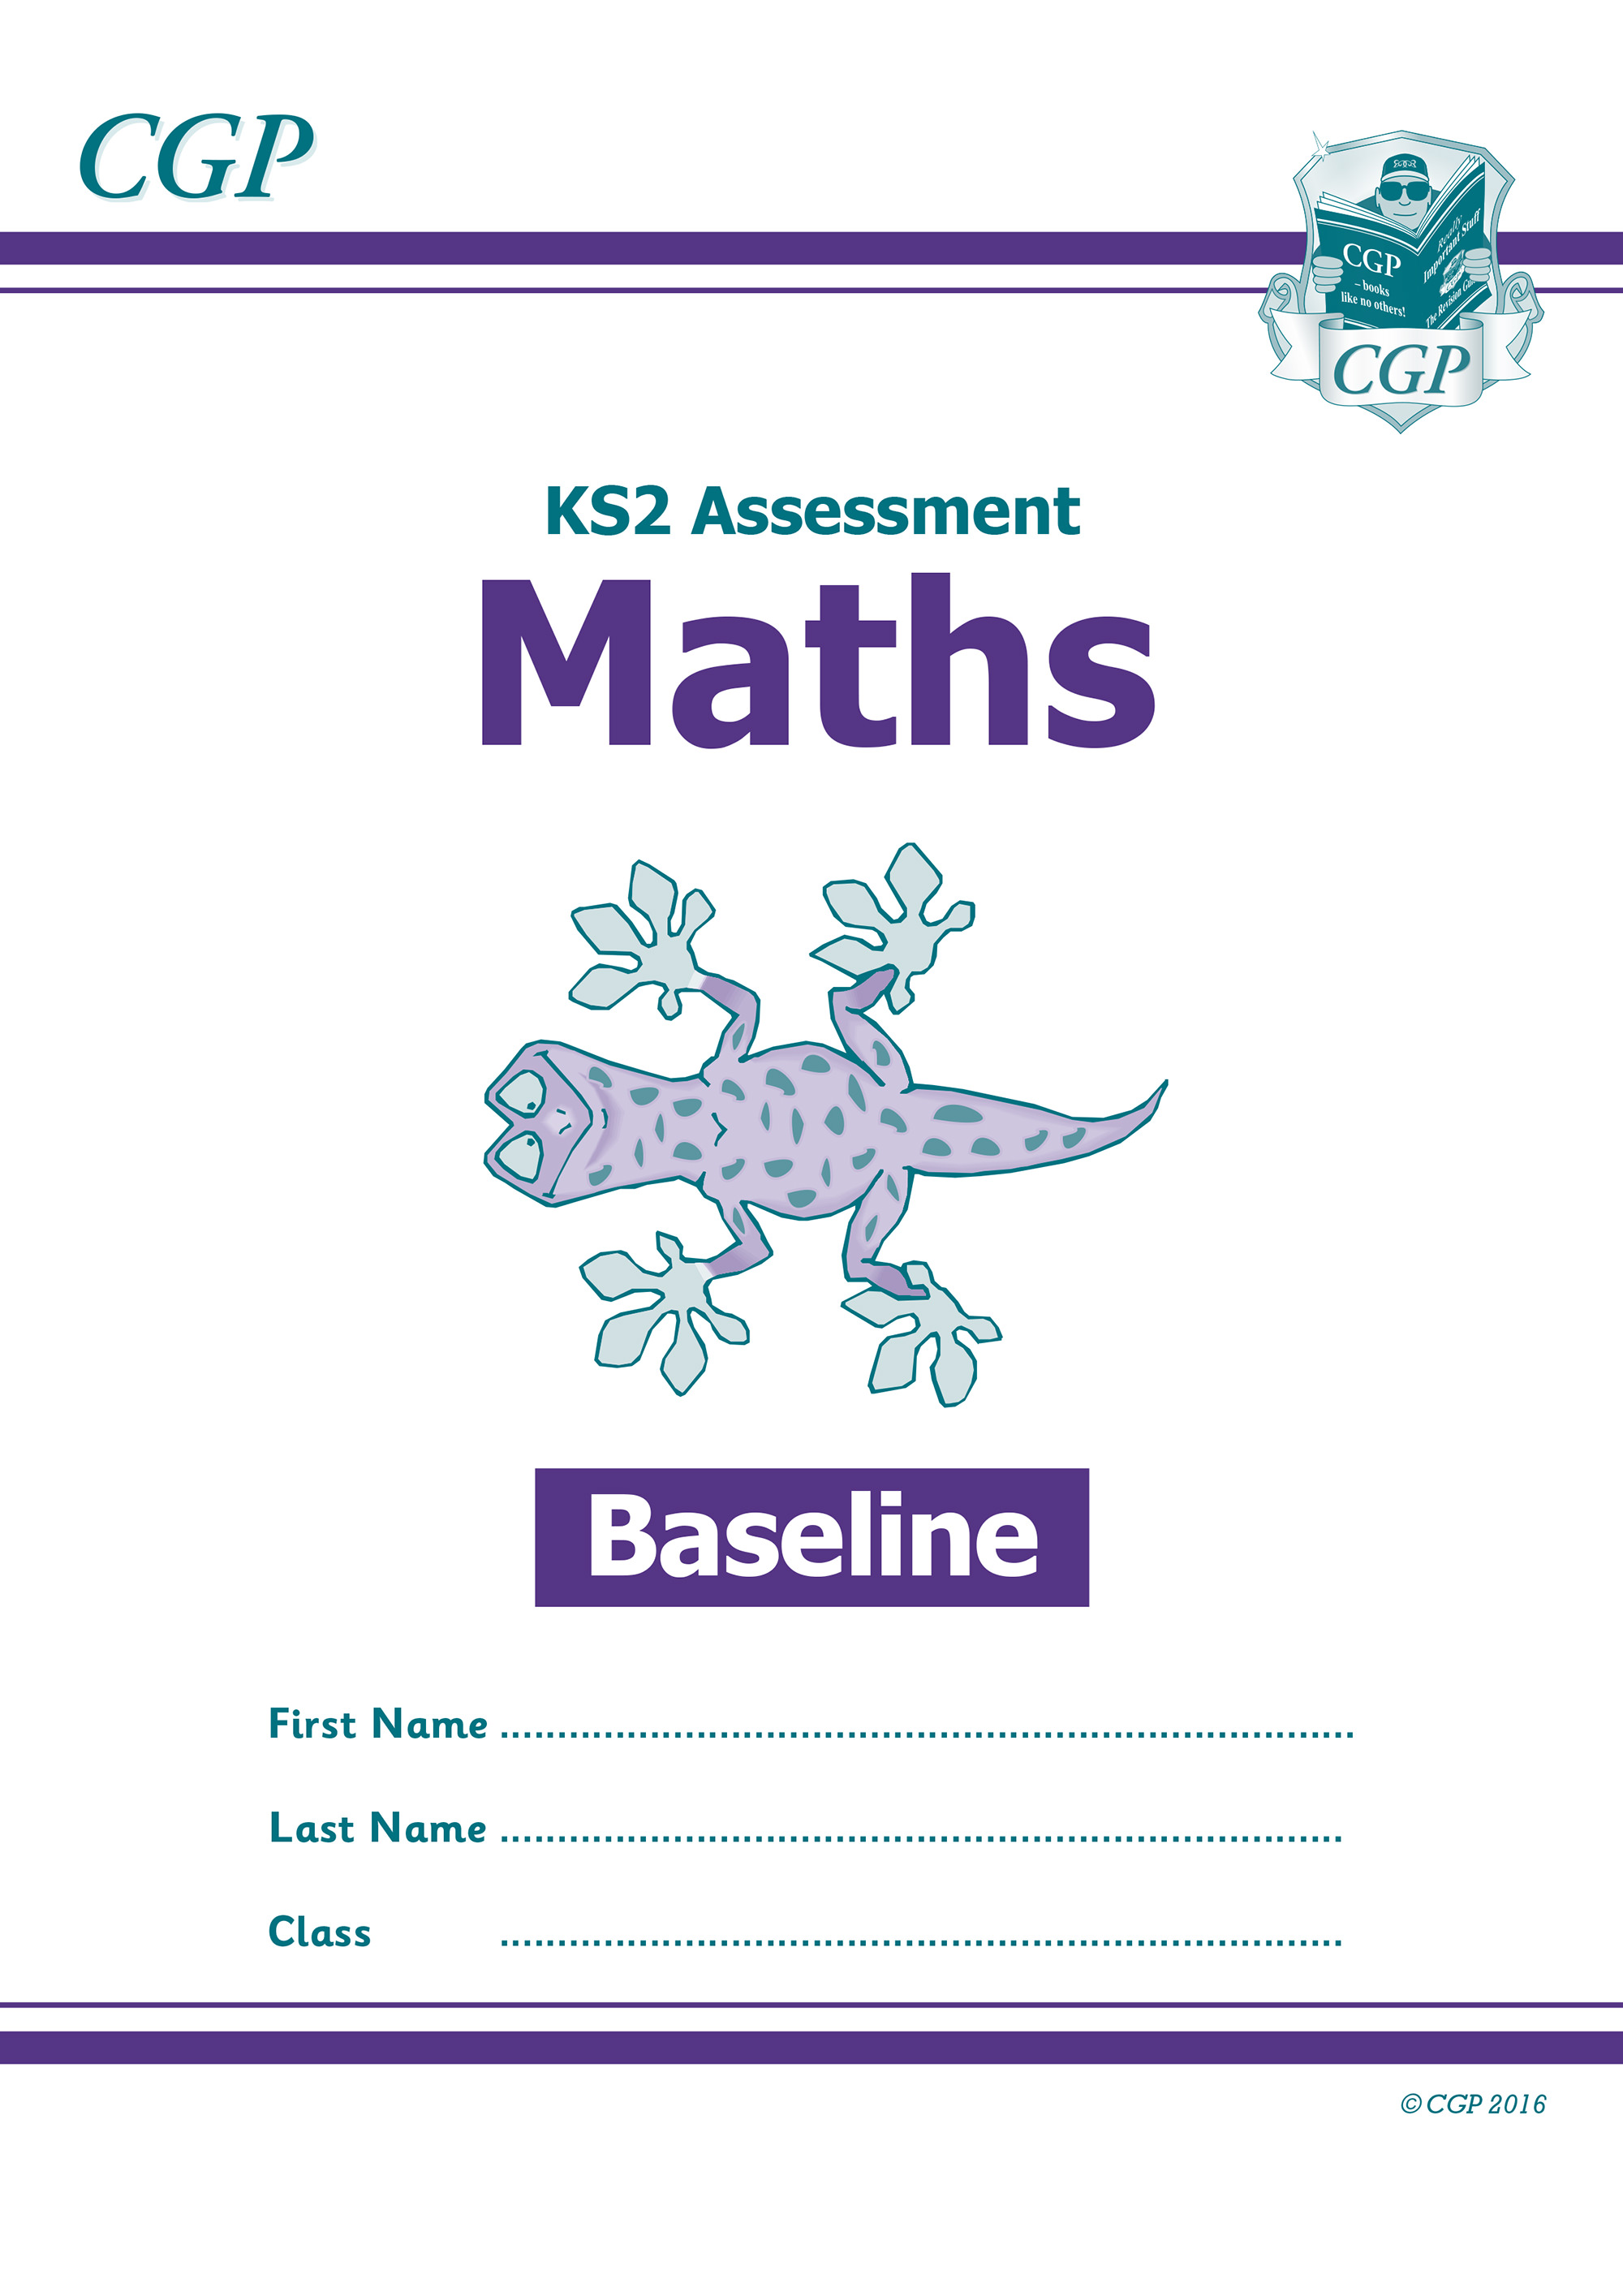 MBP21 - New KS2 Assessment: Maths - Baseline Test